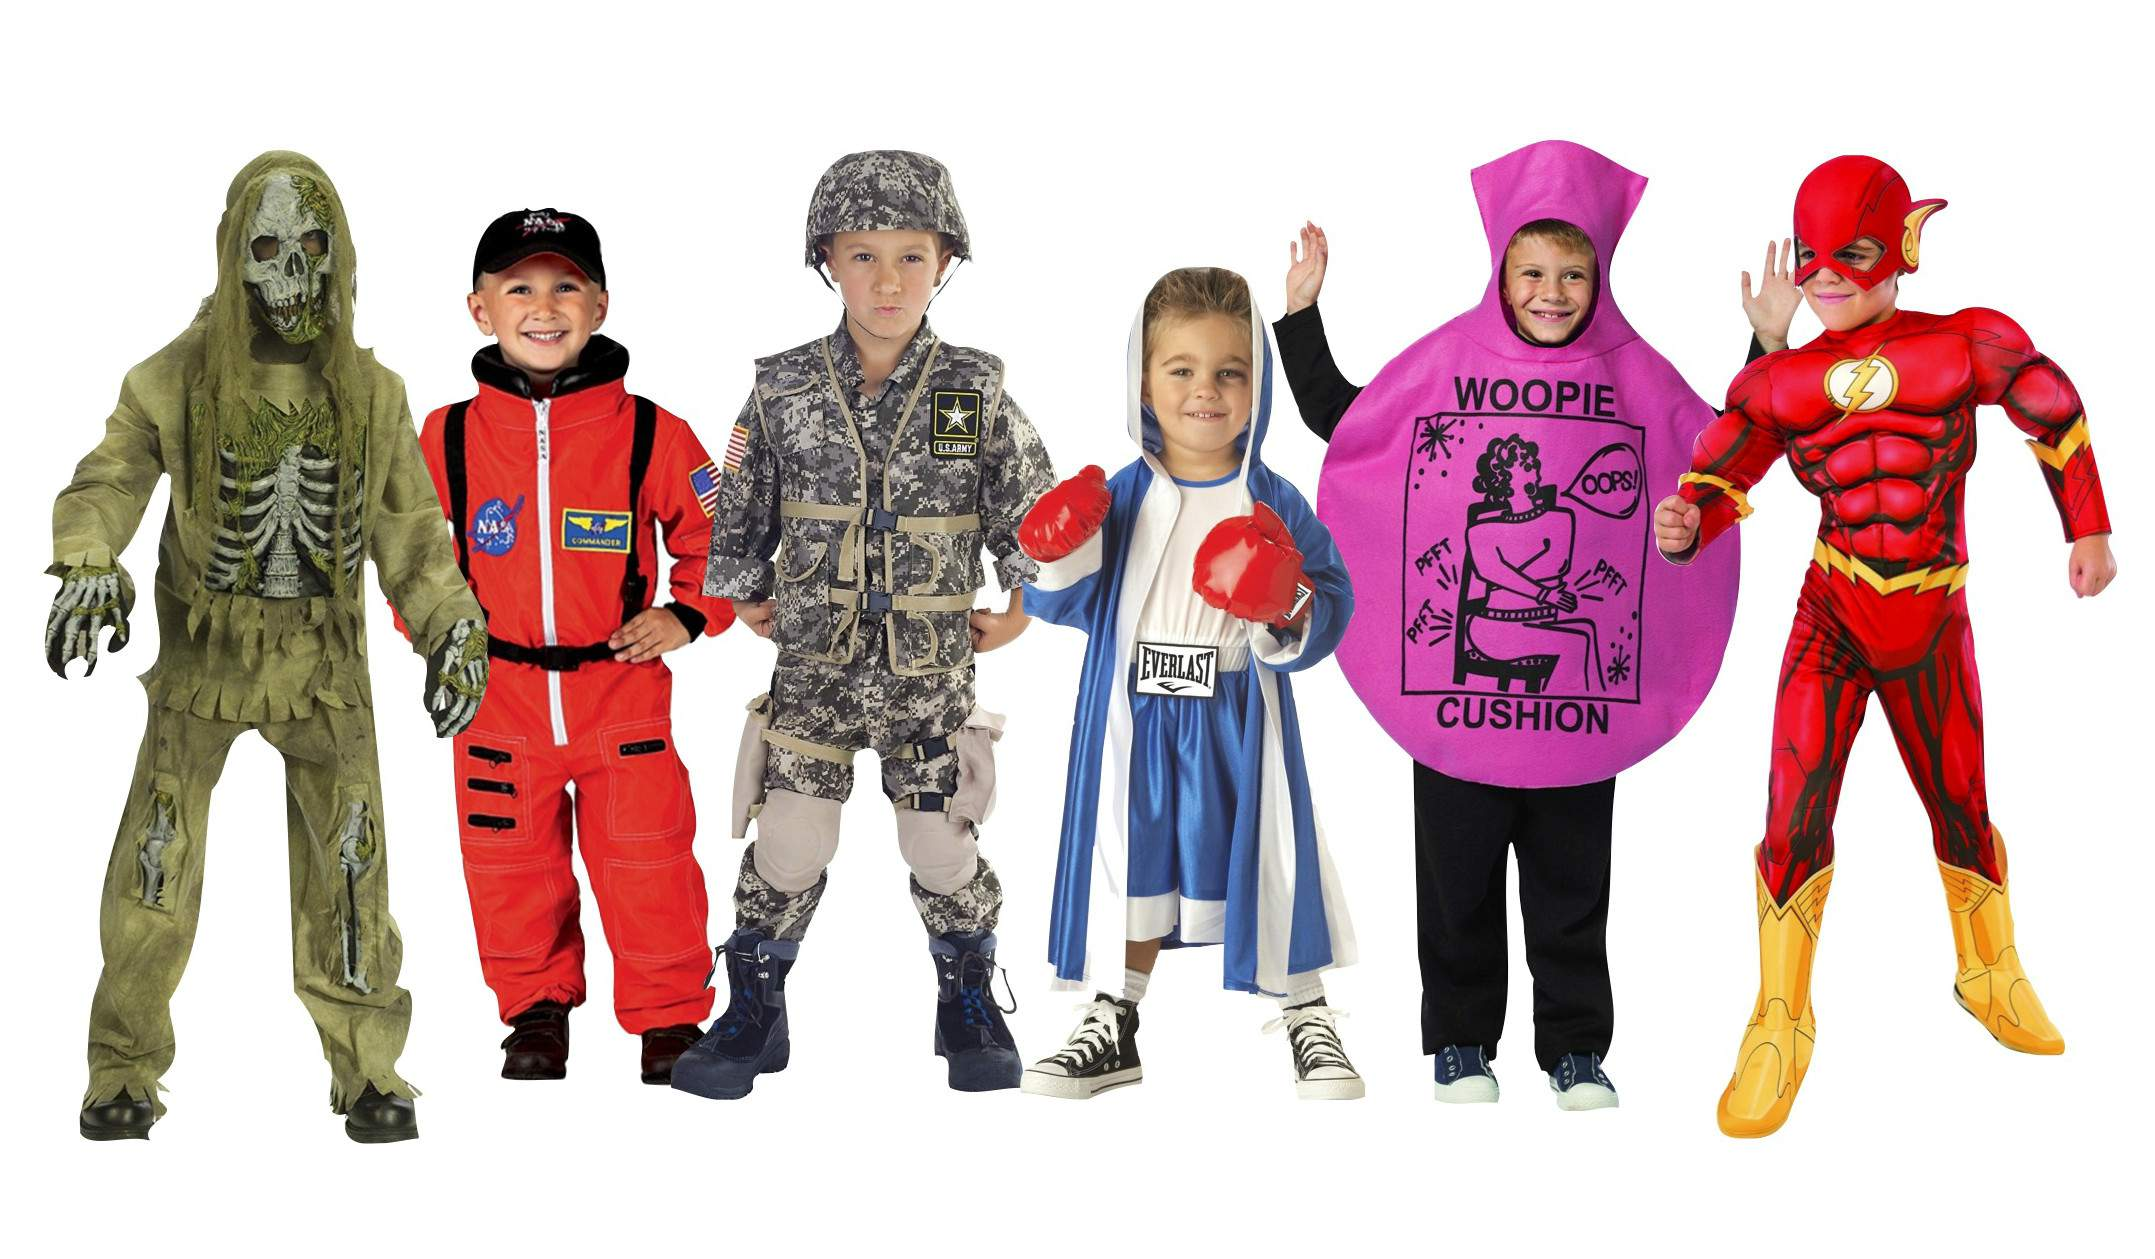 Halloween Costumes For Kids Boys 10 And Up.11 Fantastic Halloween Costumes For Kids